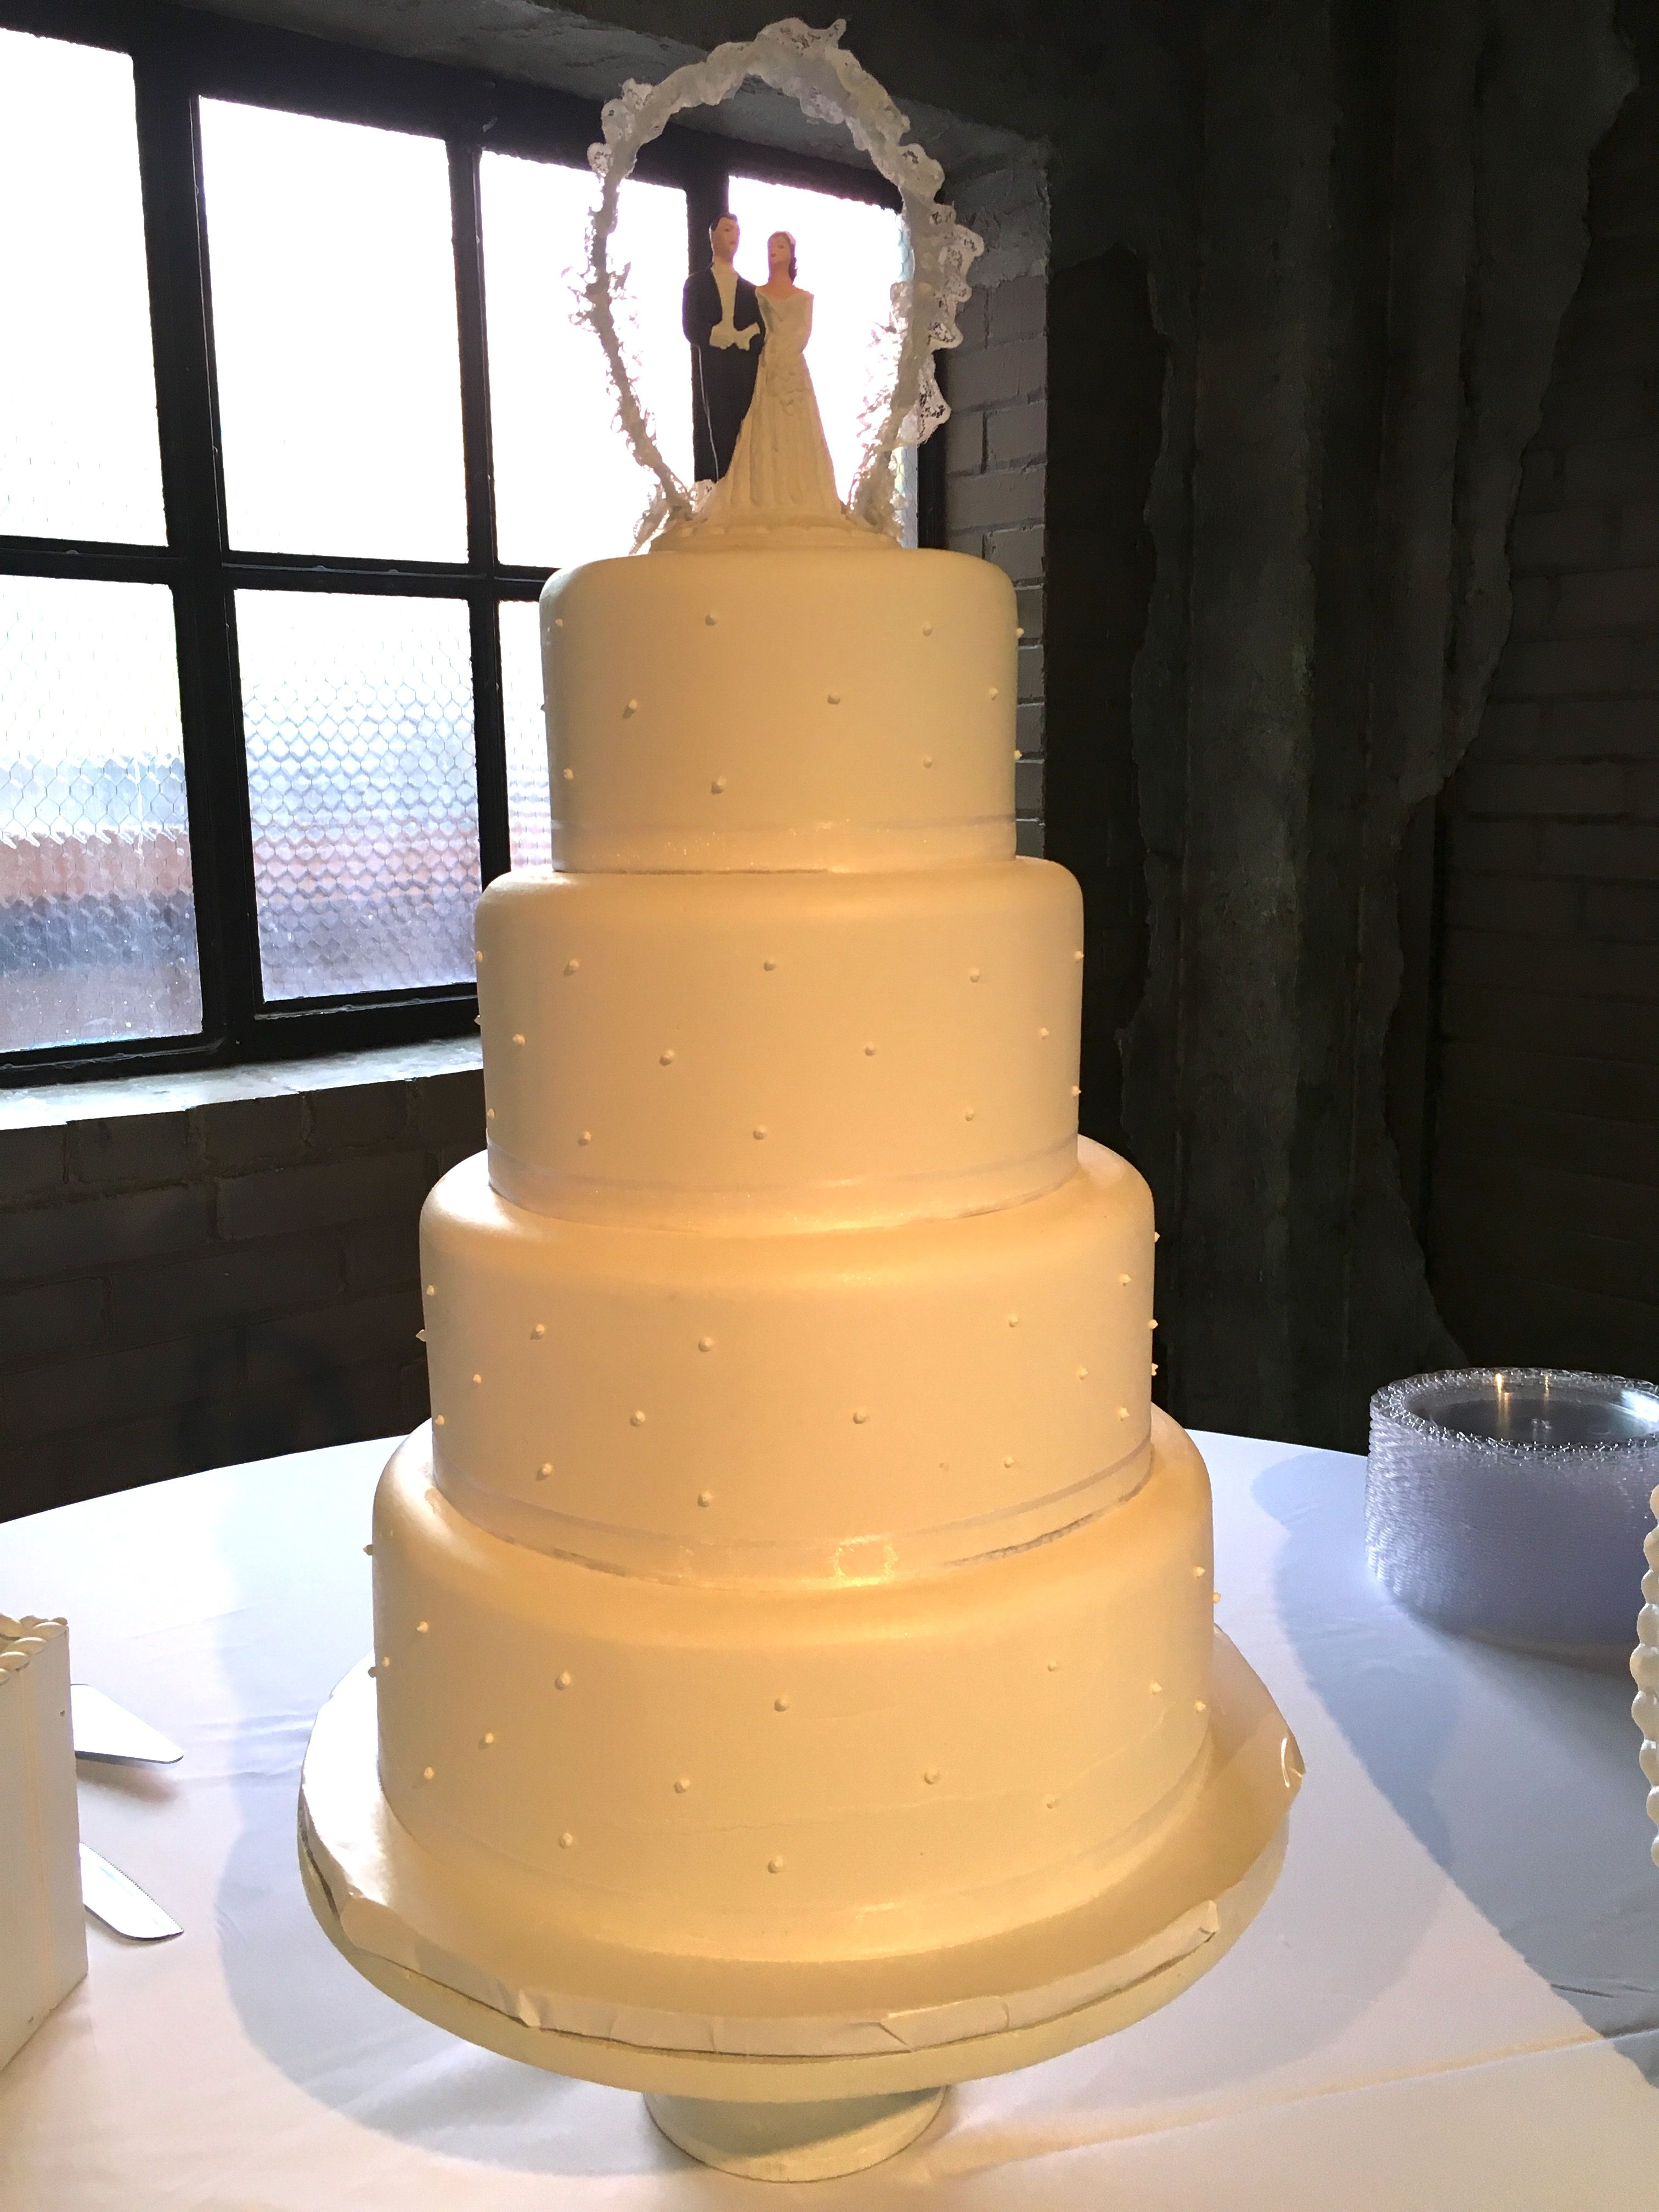 4 tier white wedding cake with dice pattern edible pearls. Matching ...